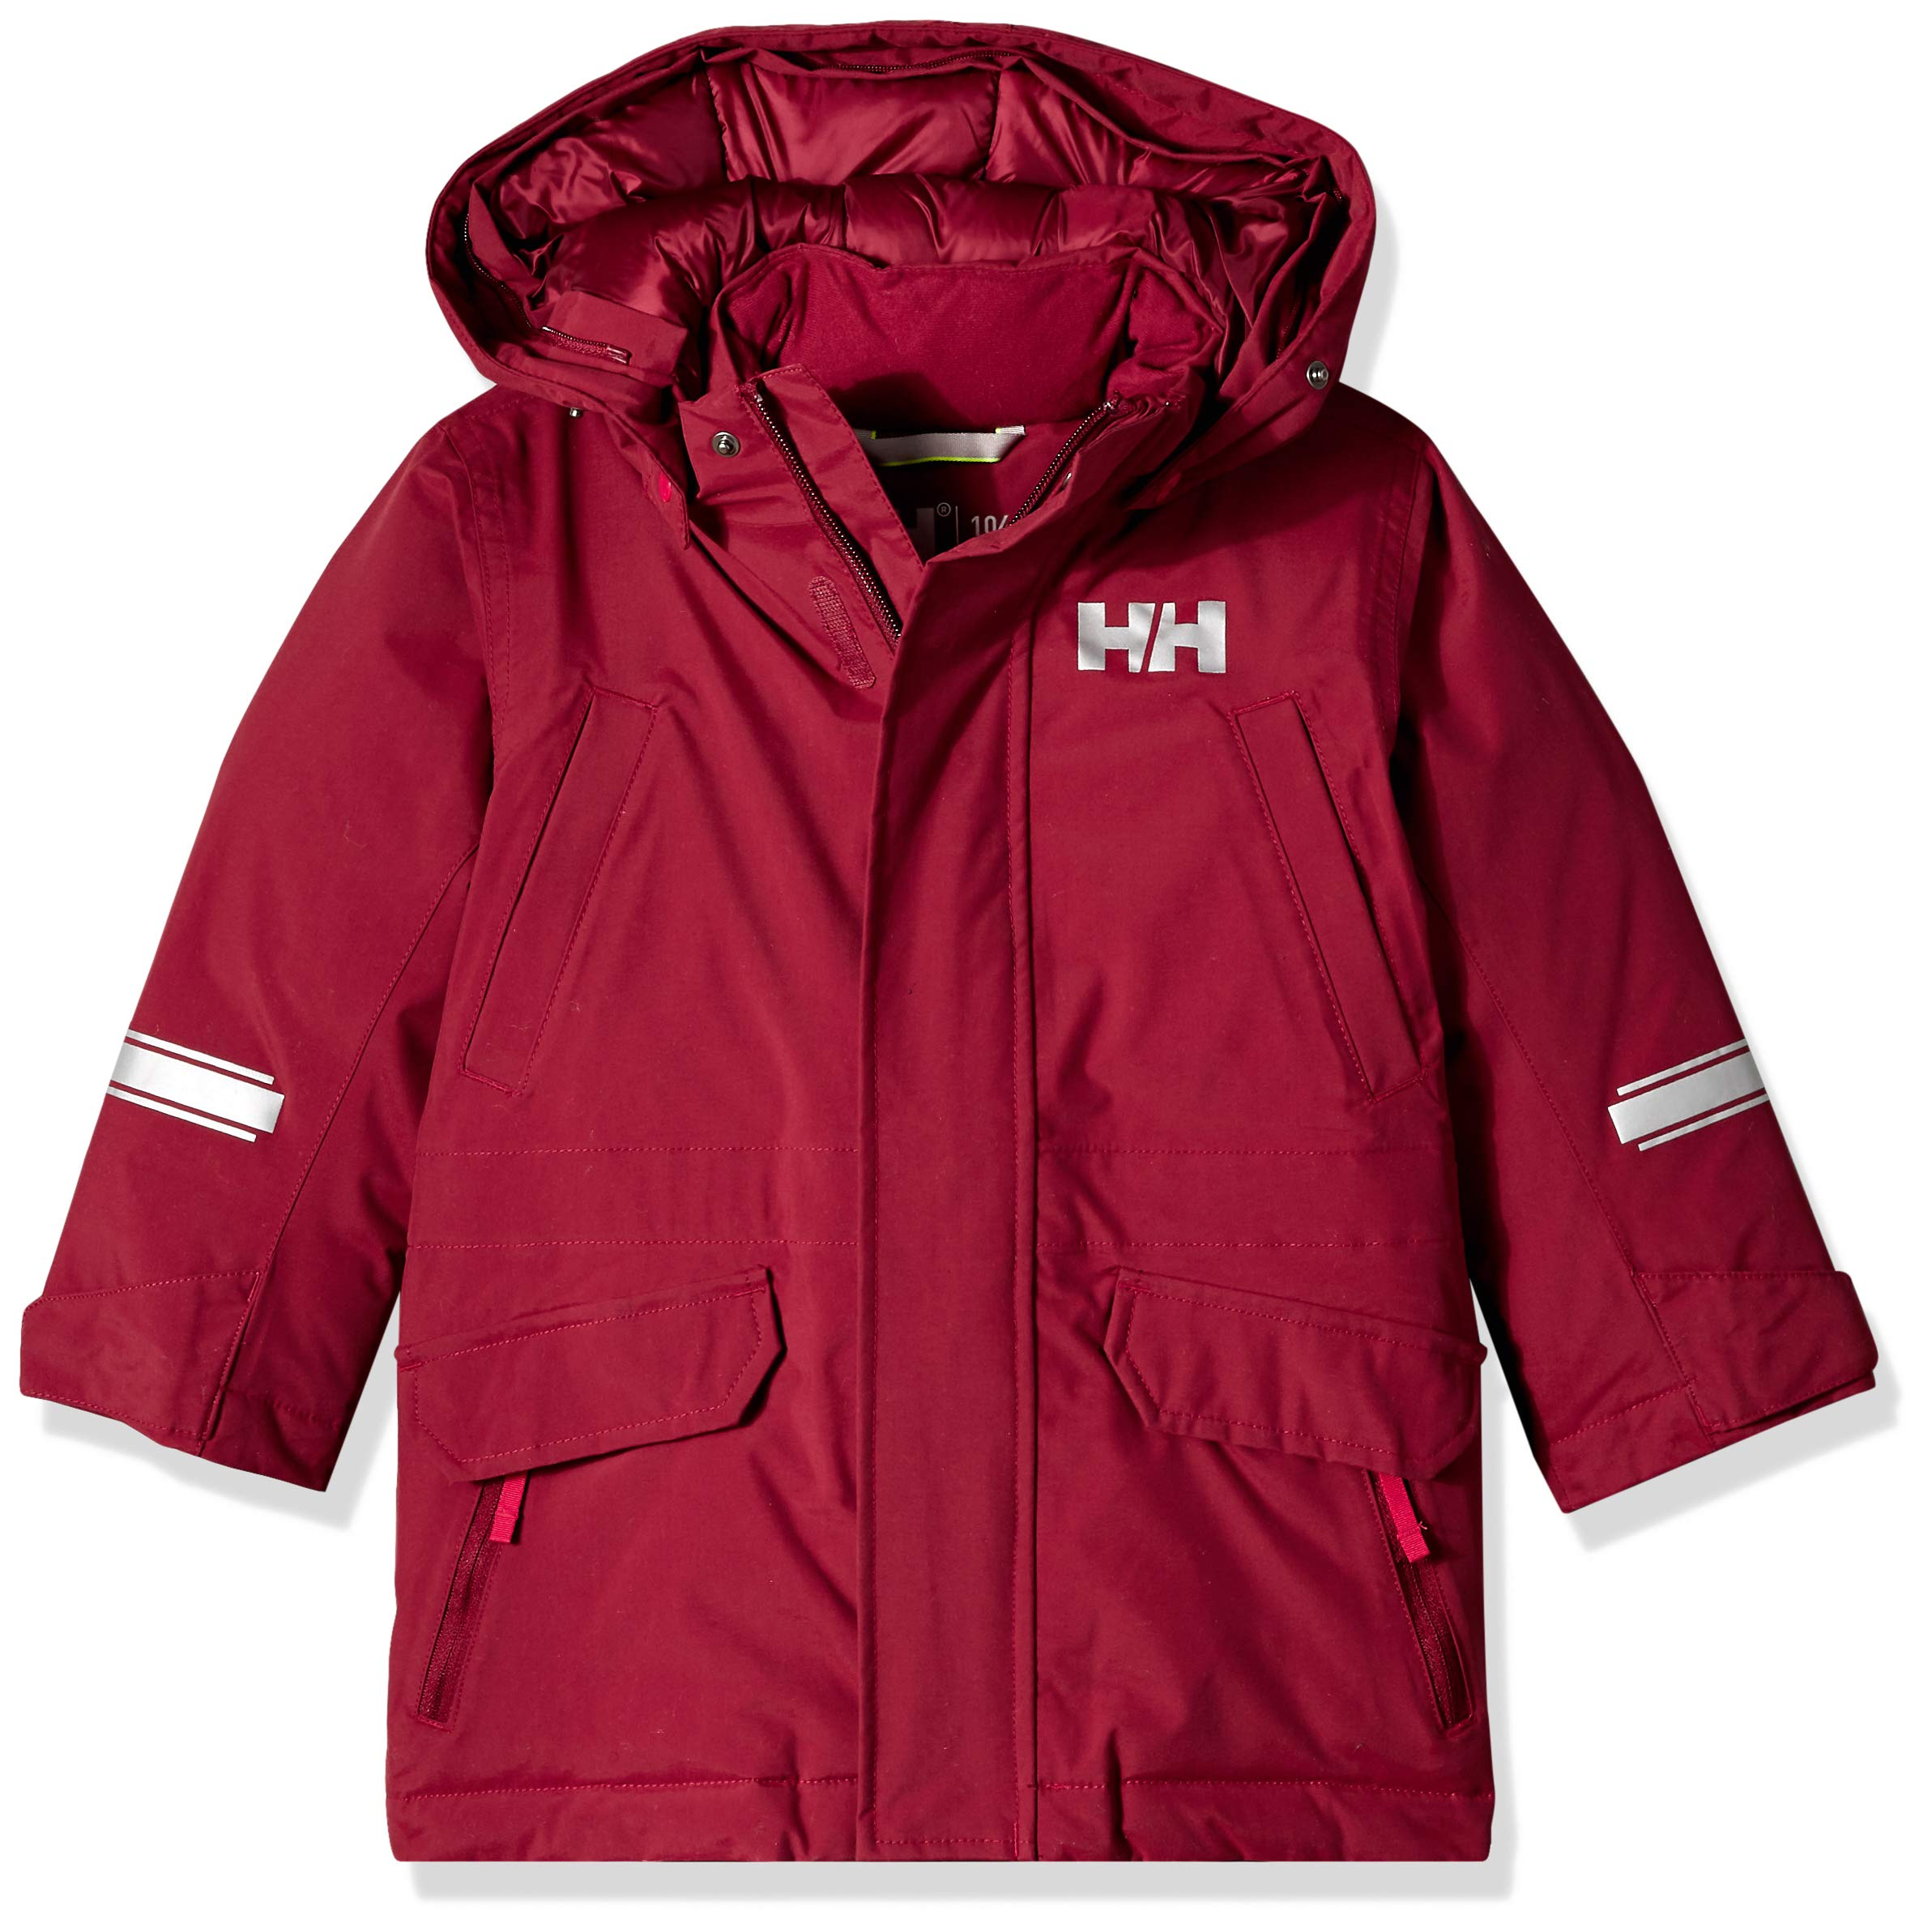 Helly Hansen K Isfjord Down Parka Jacket, Cabernet, Size 4 by Helly Hansen (Image #4)